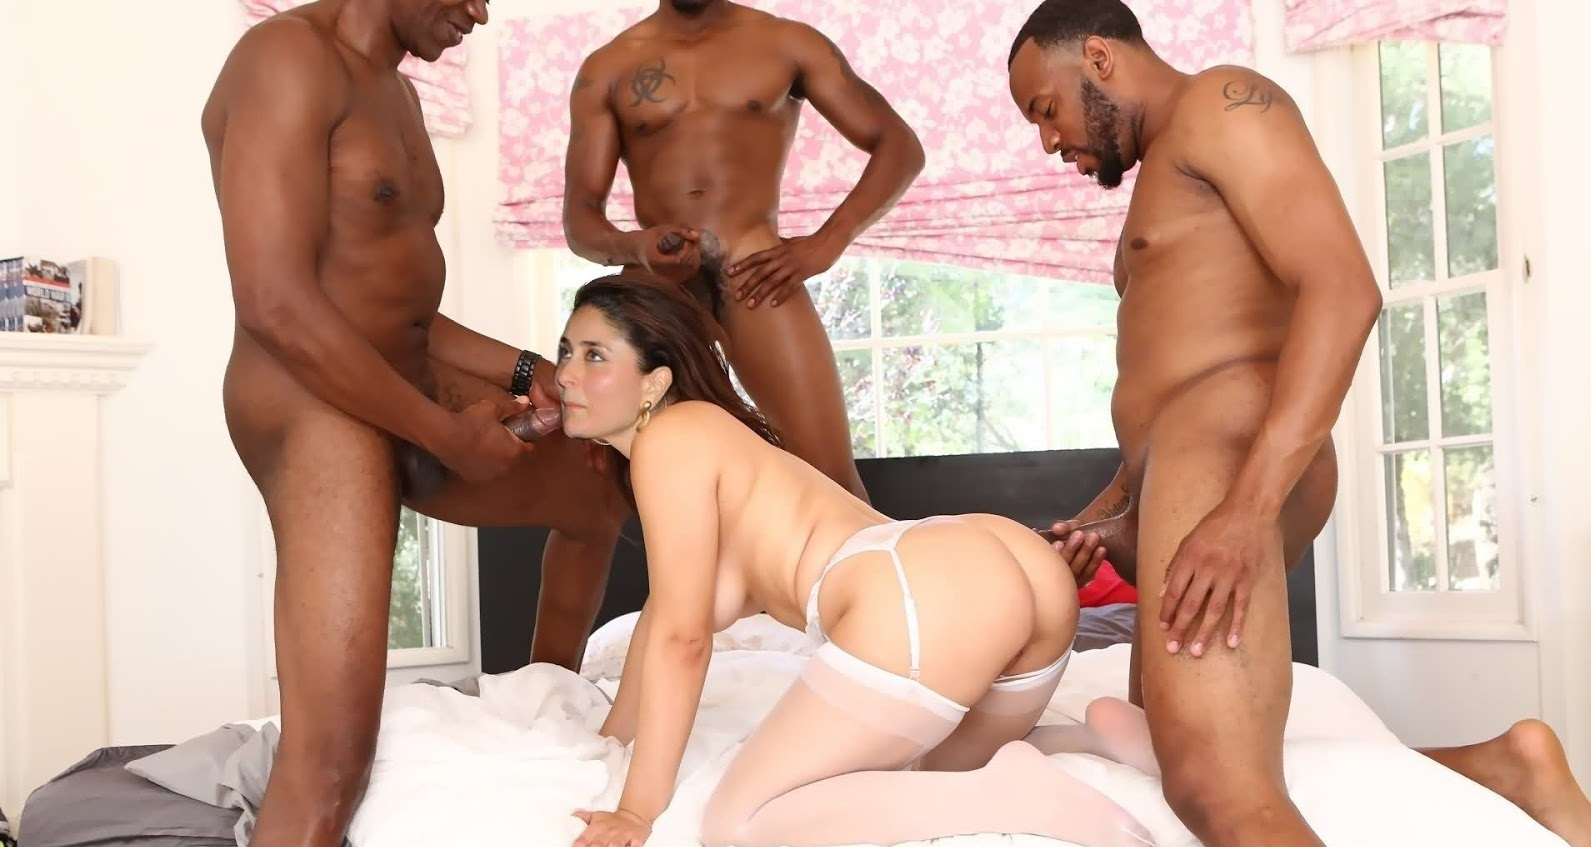 Gang bang sex kareena kapoor